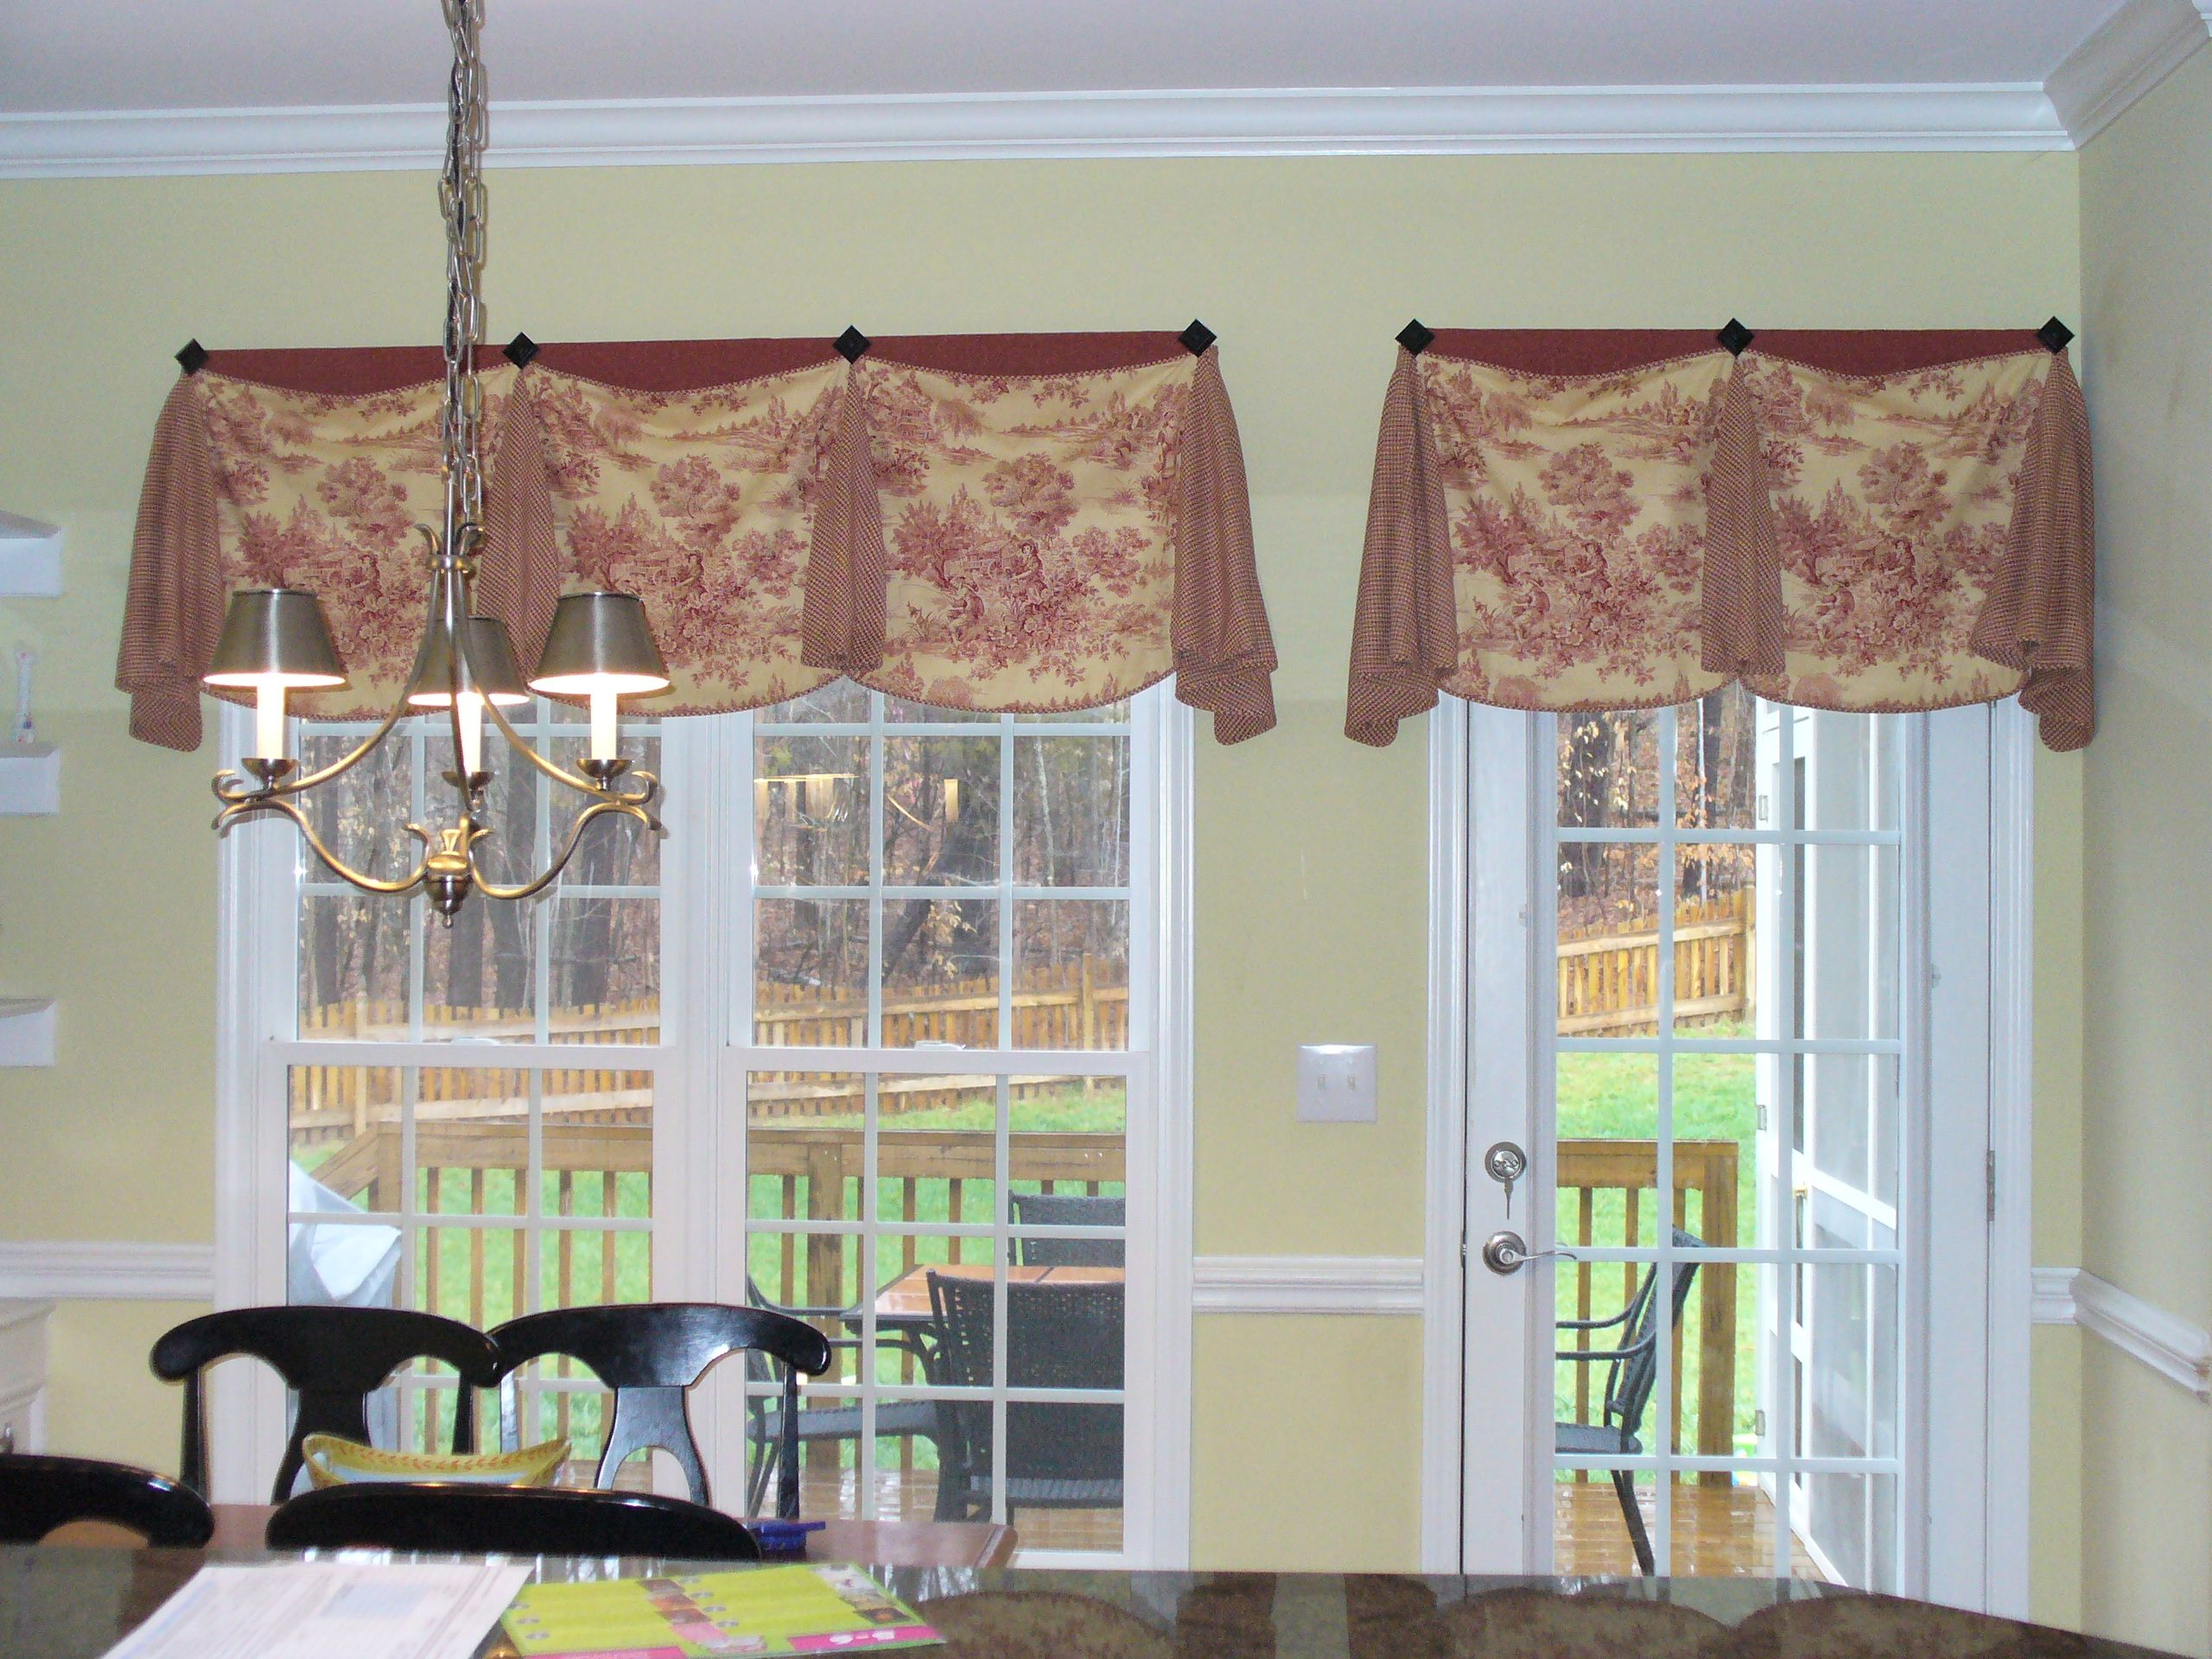 This Valance Over The French Door Was Done Very Cleverly See Next Photo For The Way French Door Decor Valance Window Treatments French Door Window Coverings